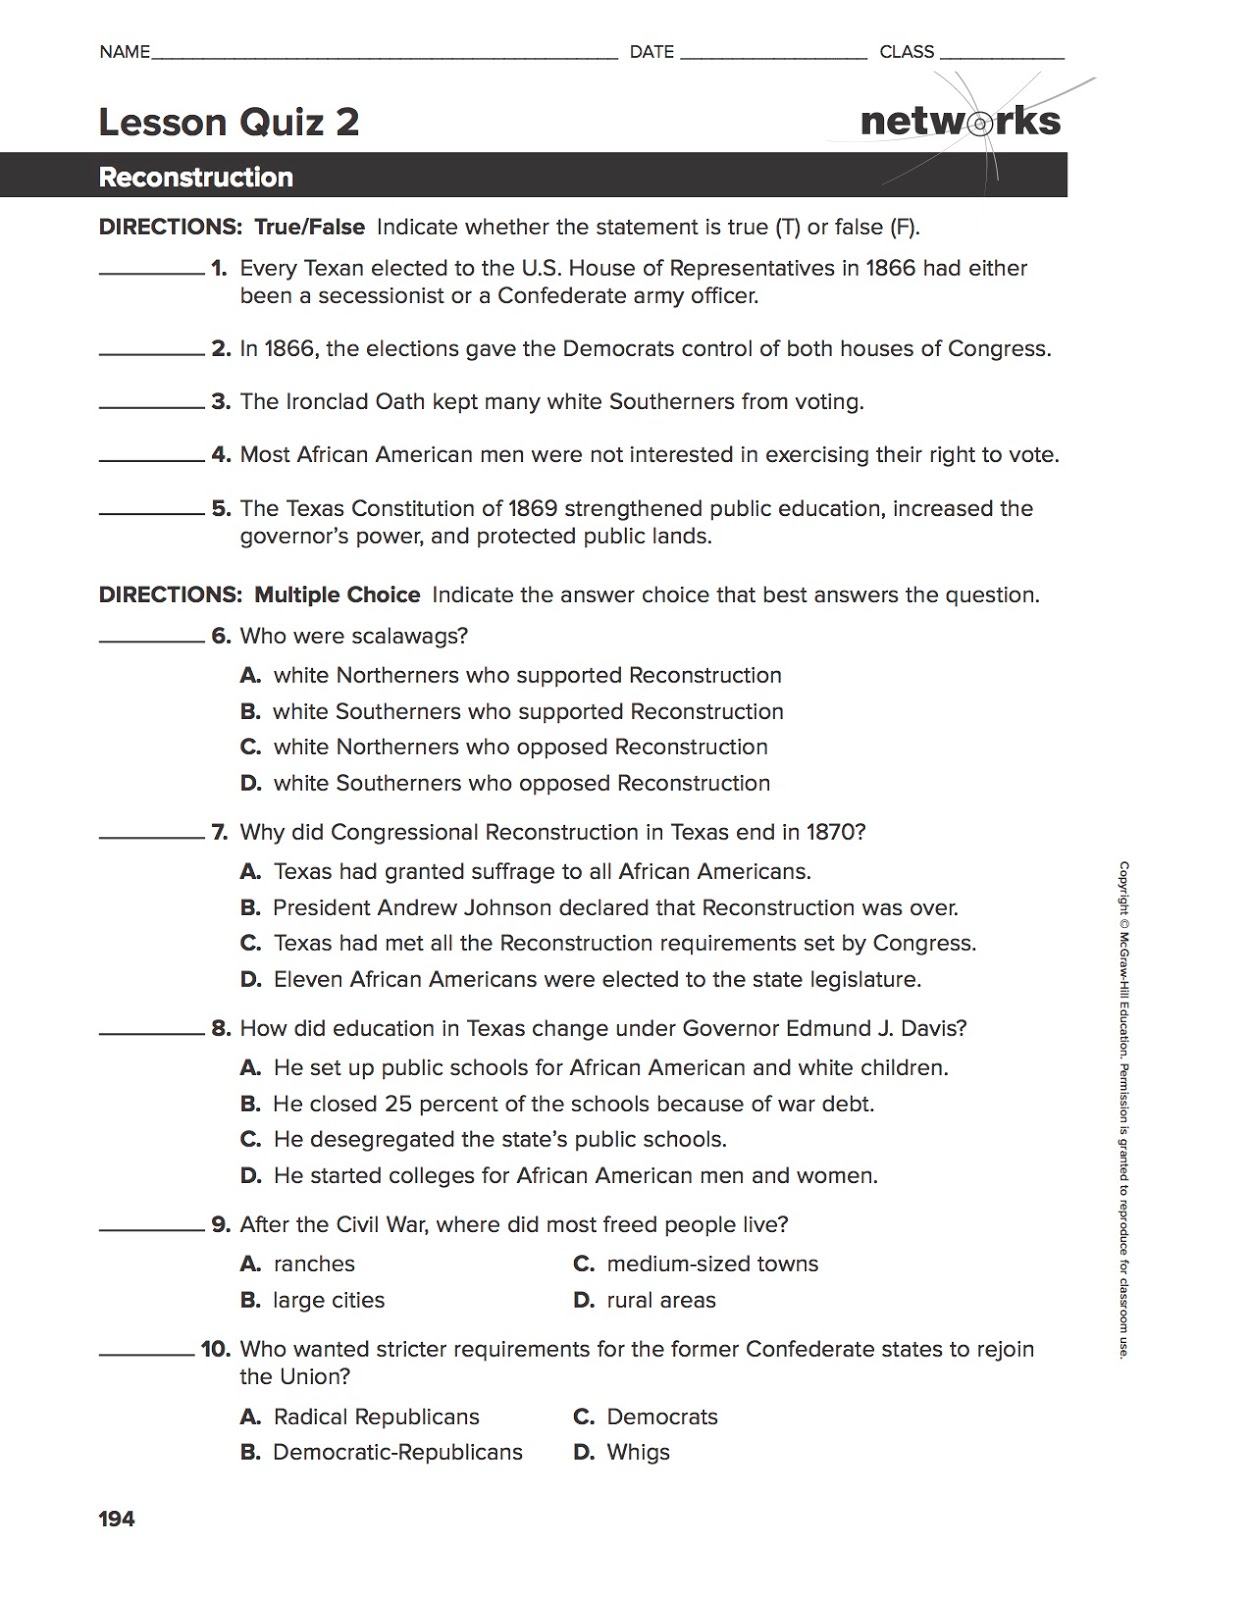 Worksheets 7th Grade History Worksheets 7th grade texas history worksheets ehms april 2016 for grade